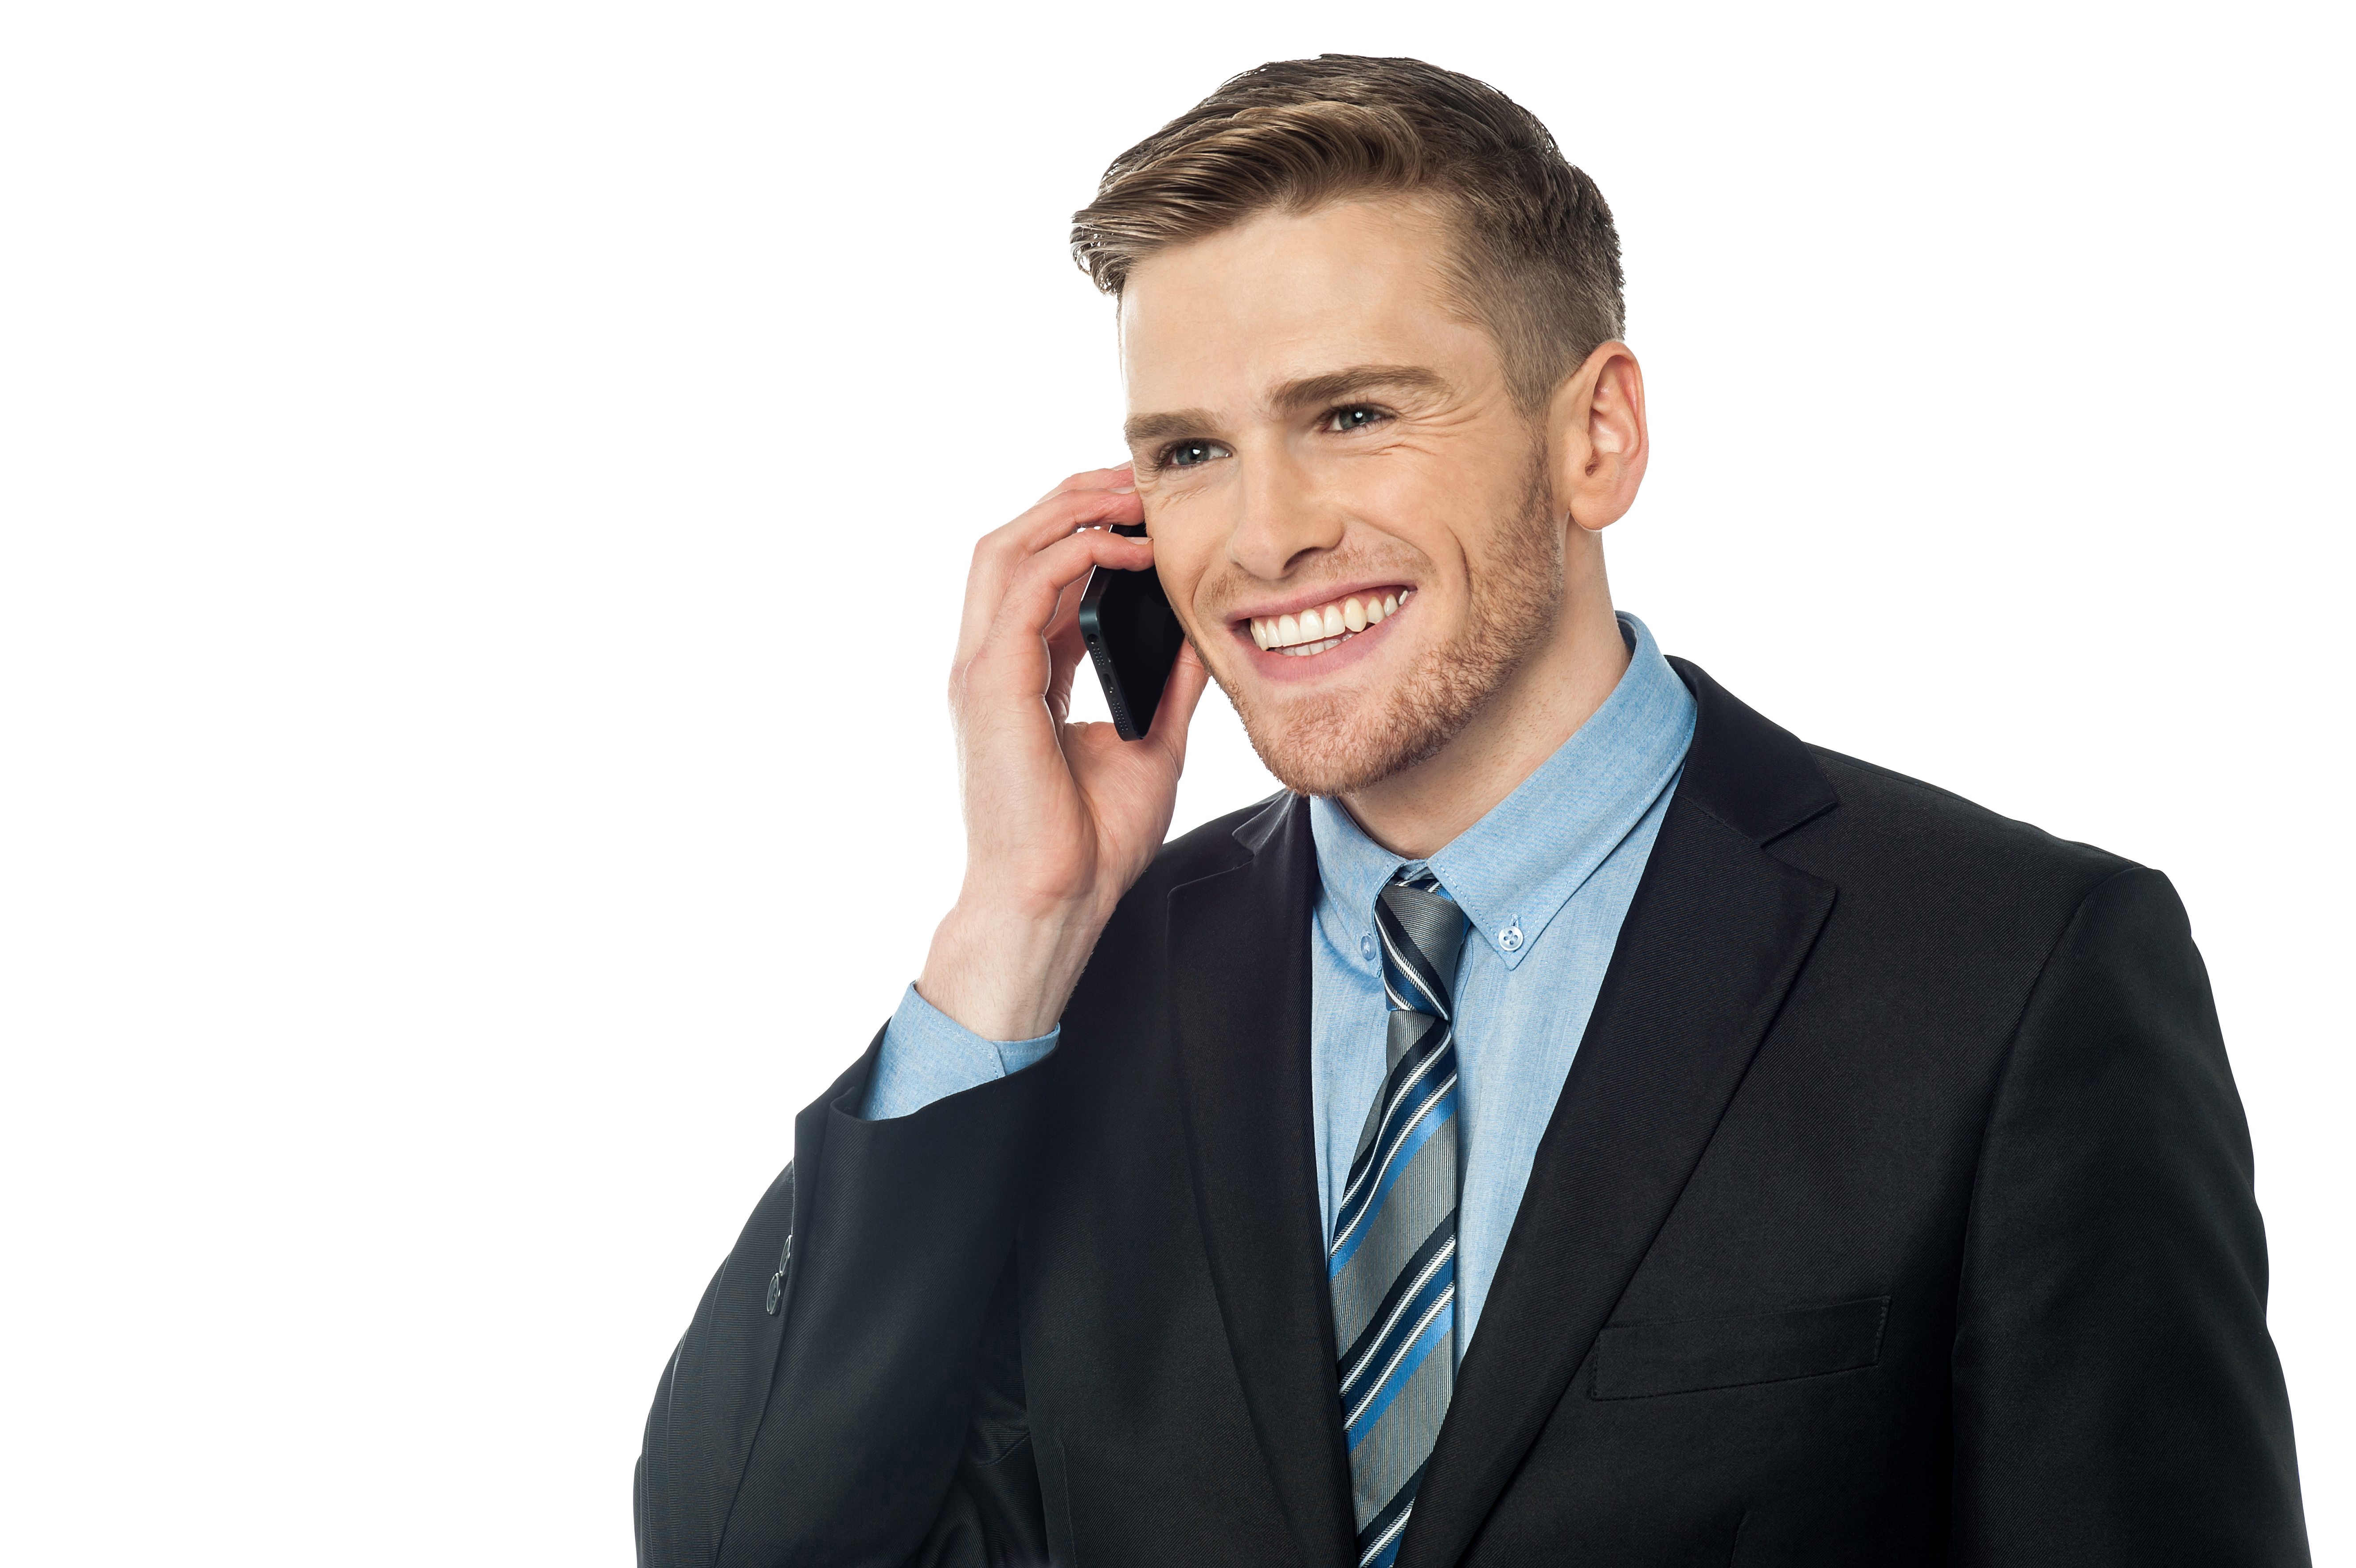 Businessperson PNG Image